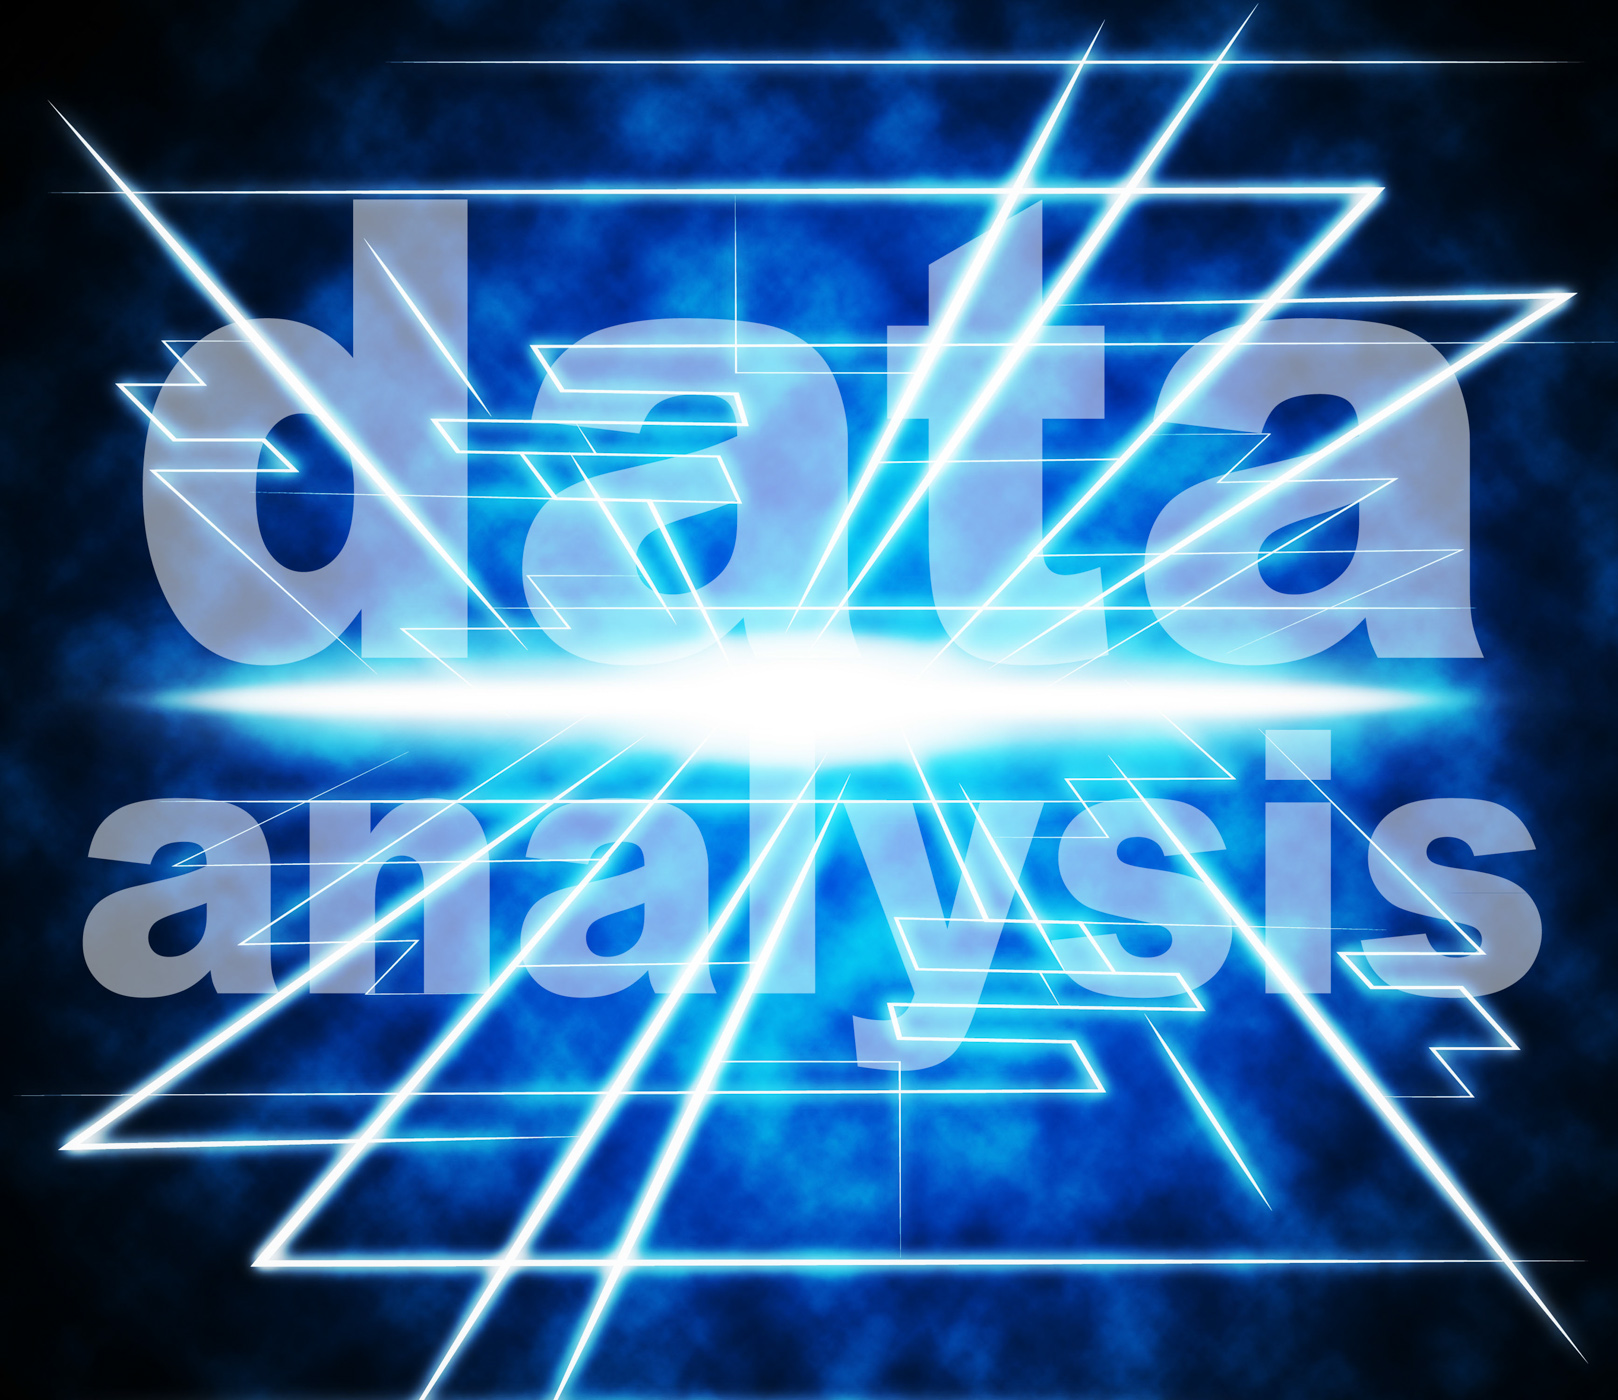 Data analysis shows analyzing bytes and facts photo